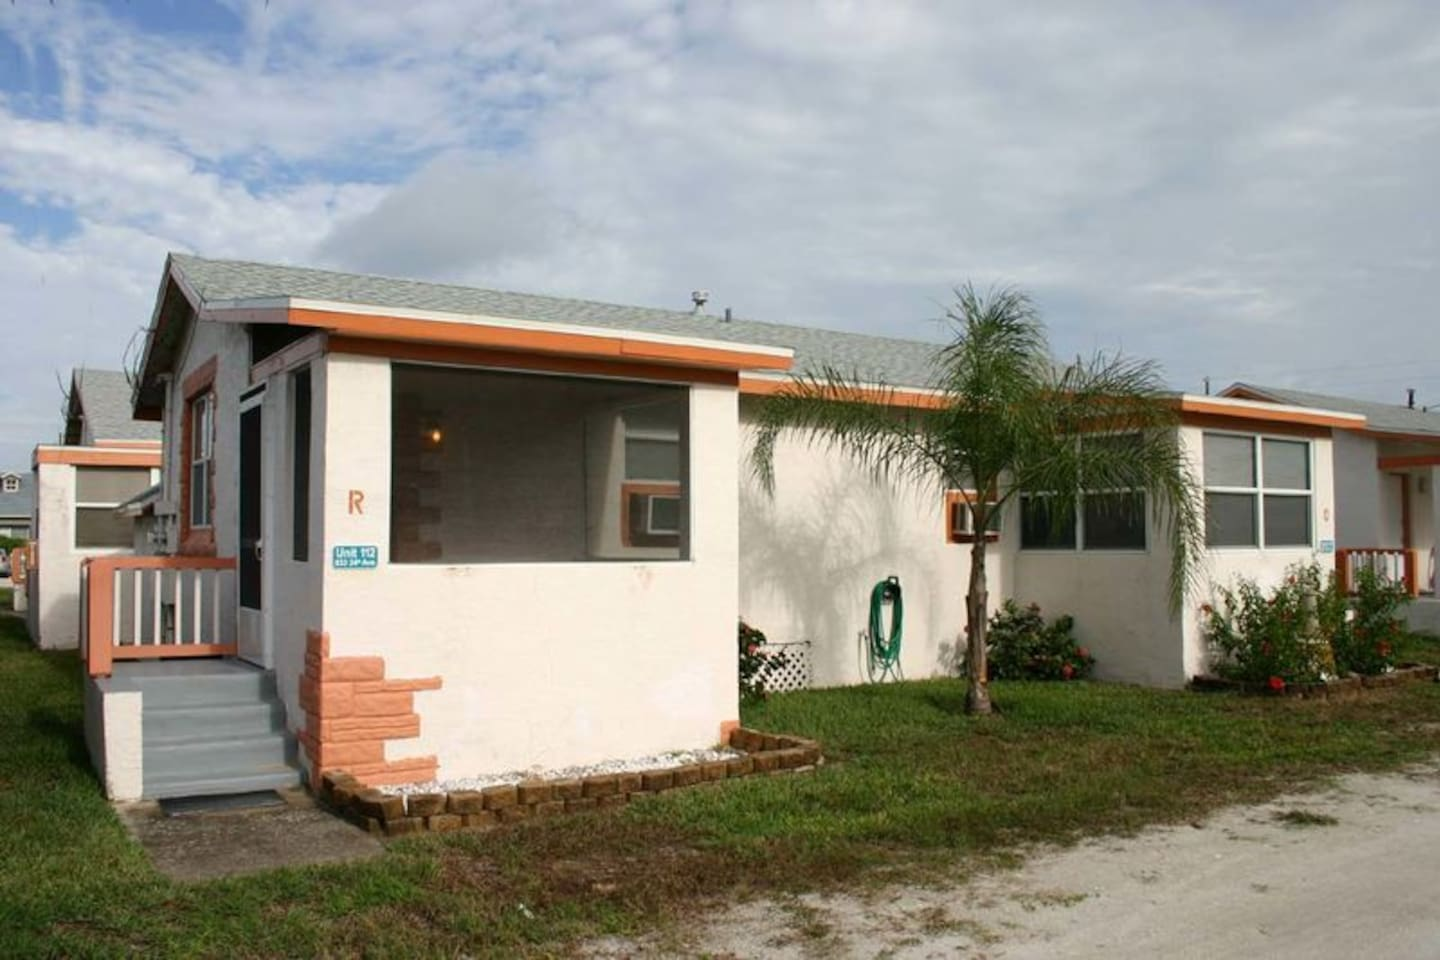 Cozy efficiency style apartment located across the street from the beach.